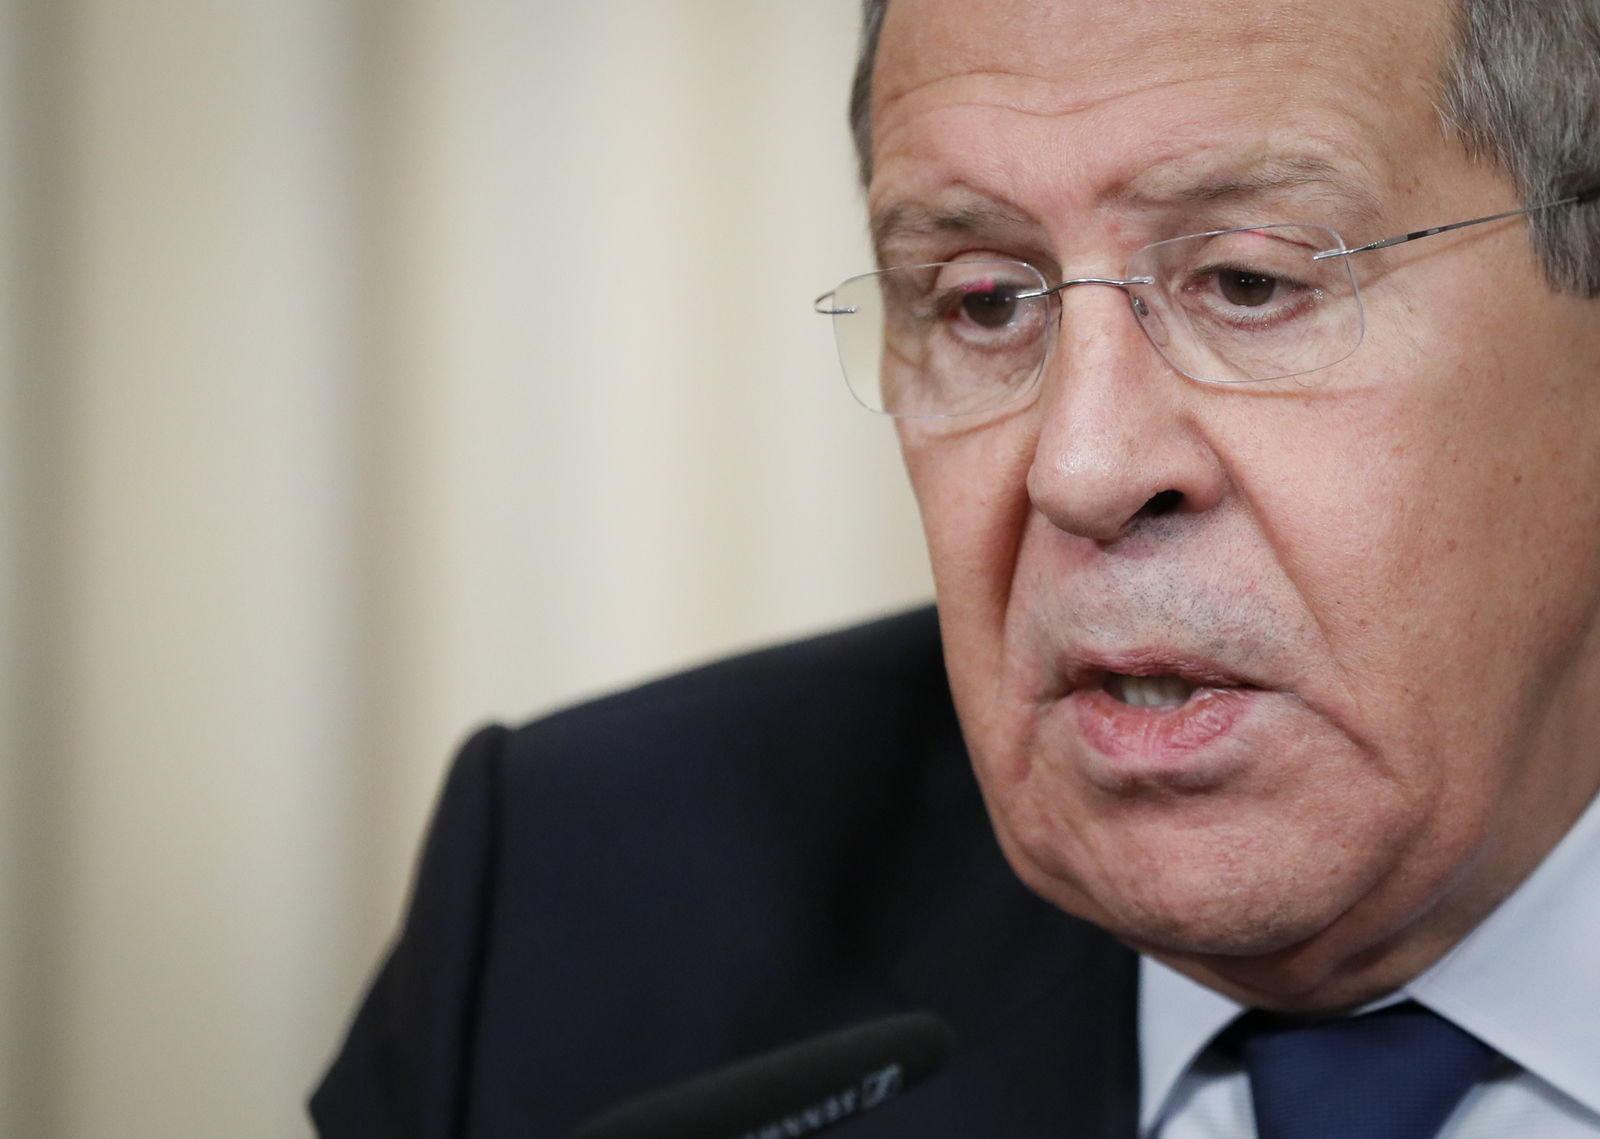 Russian Foreign Minister Sergey Lavrov speaks during his and Germany's Foreign Minister Heiko Maas joint news conference following their talks in Moscow, Russia, Friday, Jan. 18, 2019. Germany's foreign minister has urged Russia to save a key arms treaty with the U.S. to prevent a new arms race. (AP Photo)